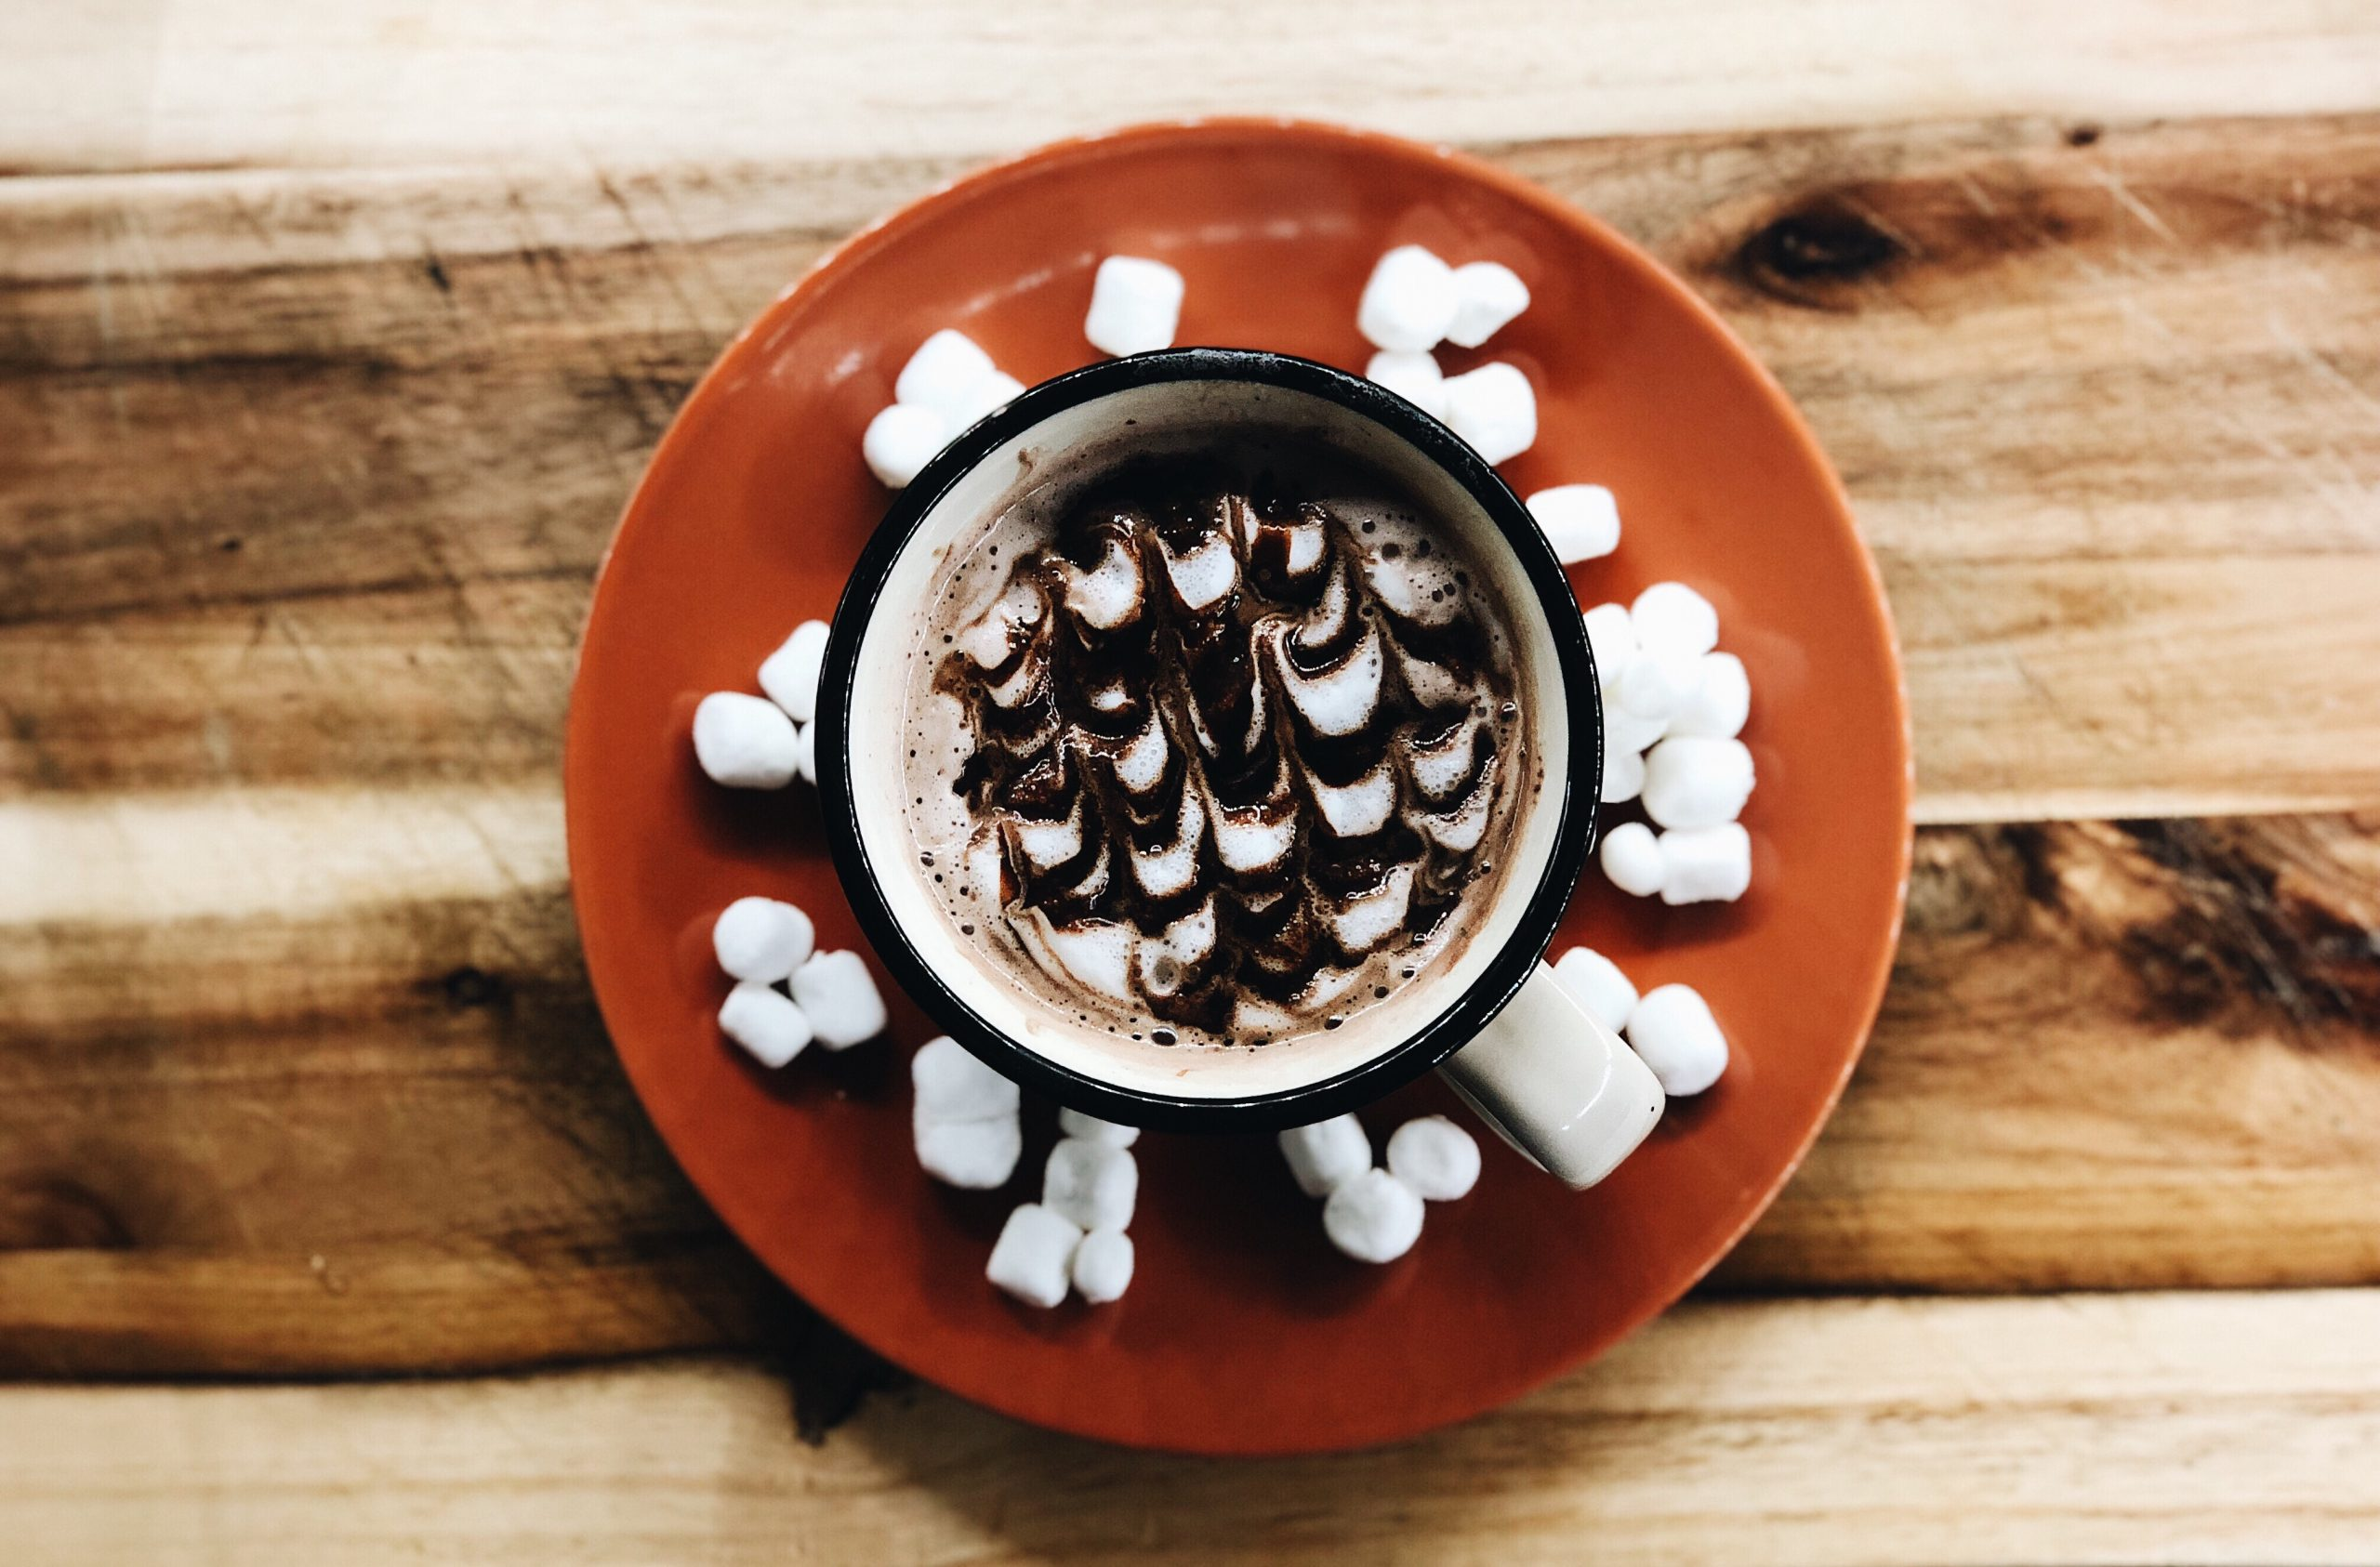 A study confirms that drinking cocoa before exercise increases blood flow